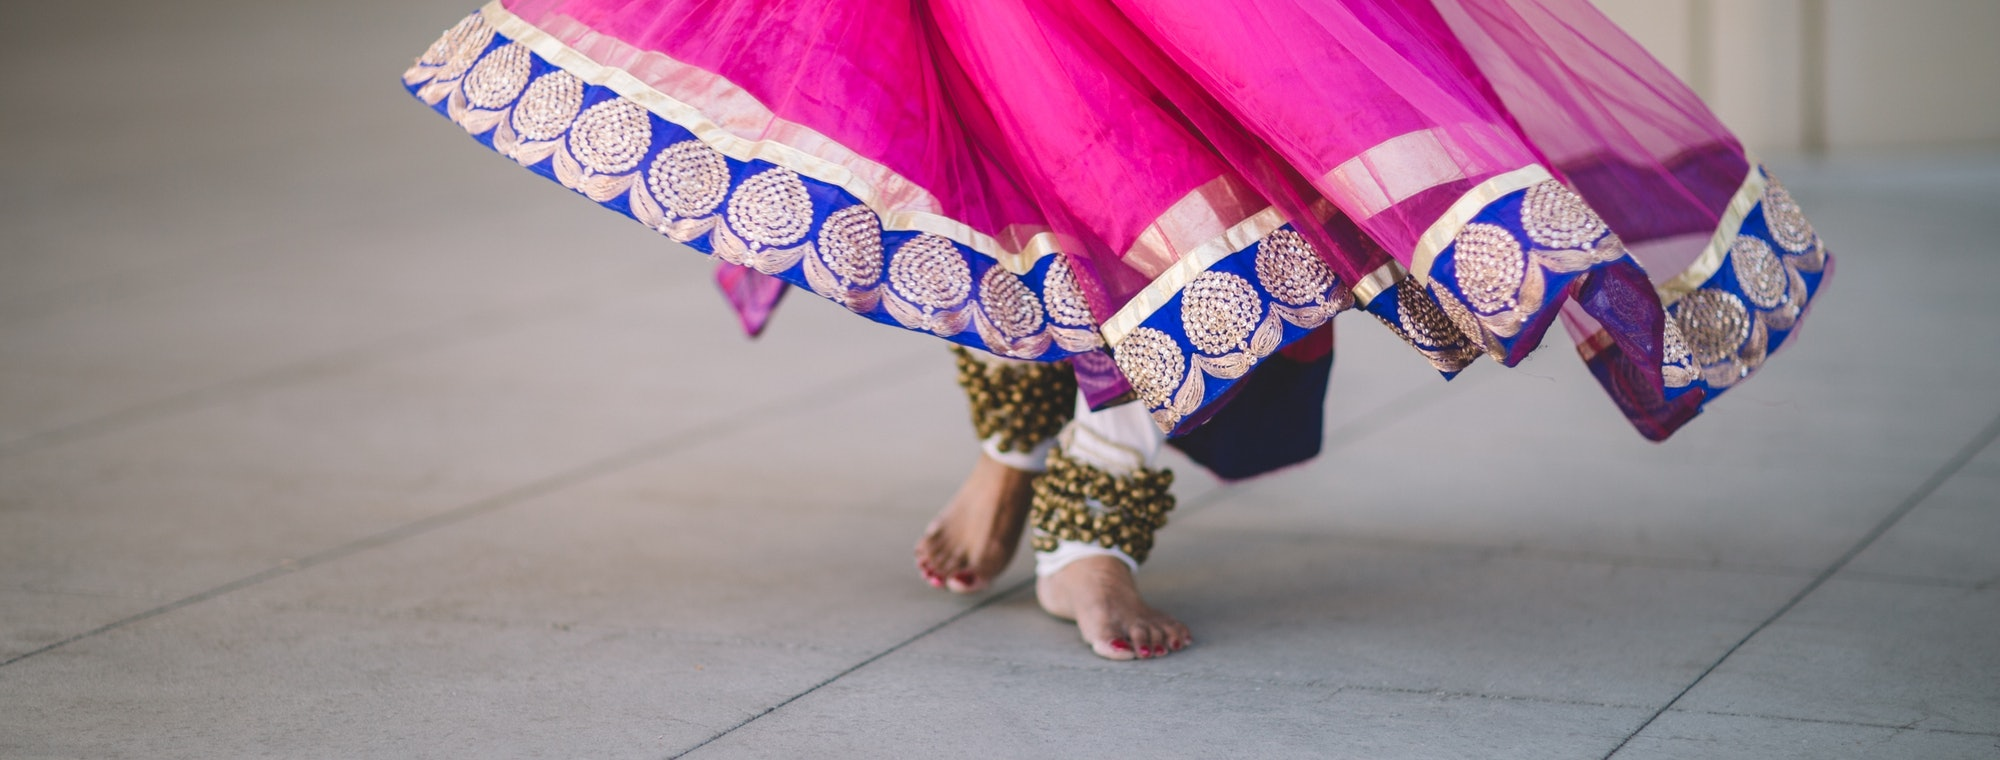 Why My Hinduism Includes Feminism And Abortion